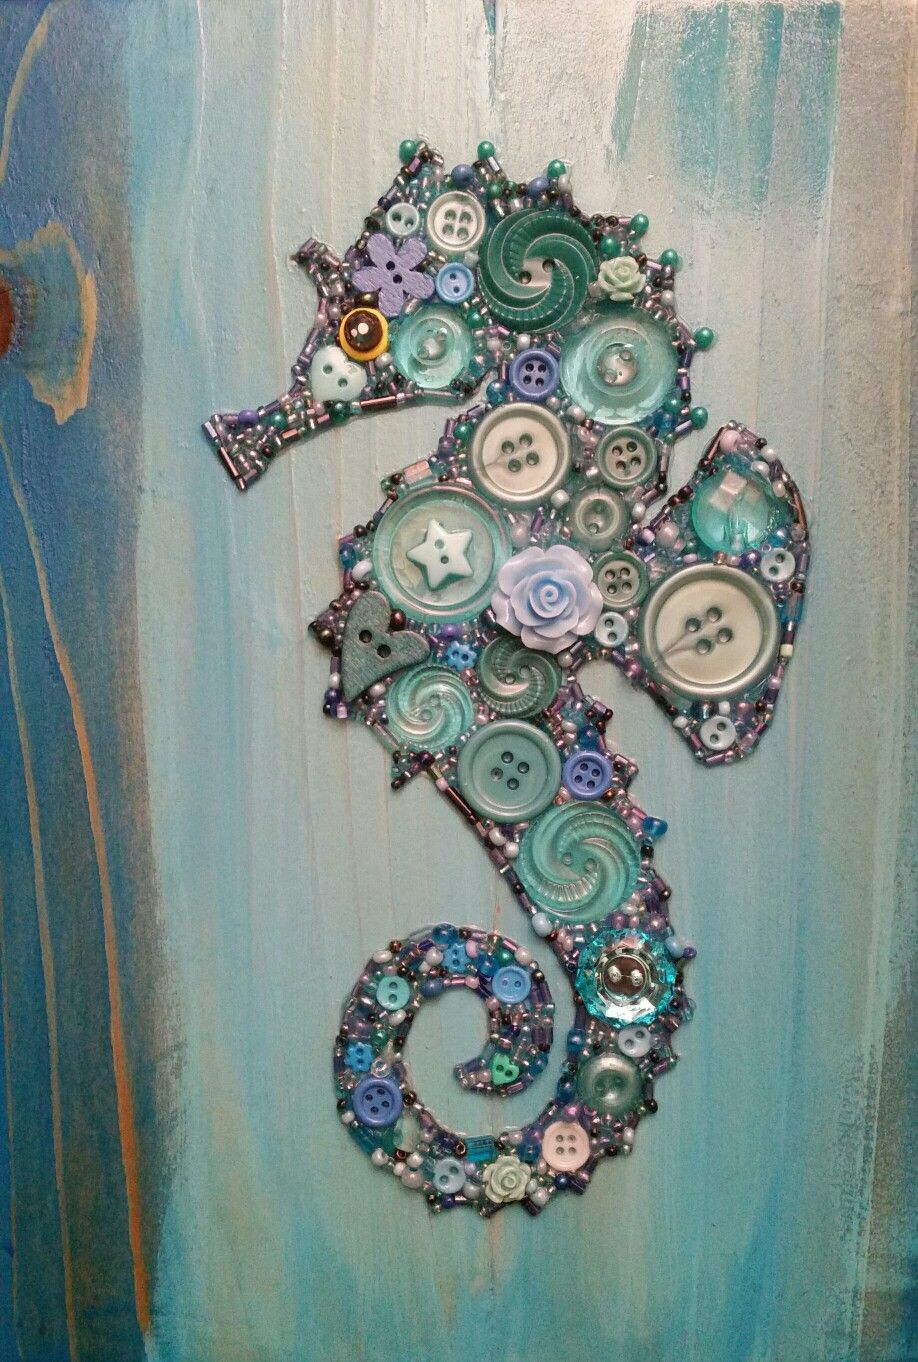 Button Art Seahorse On Recycled Wood With Acrylic Paint